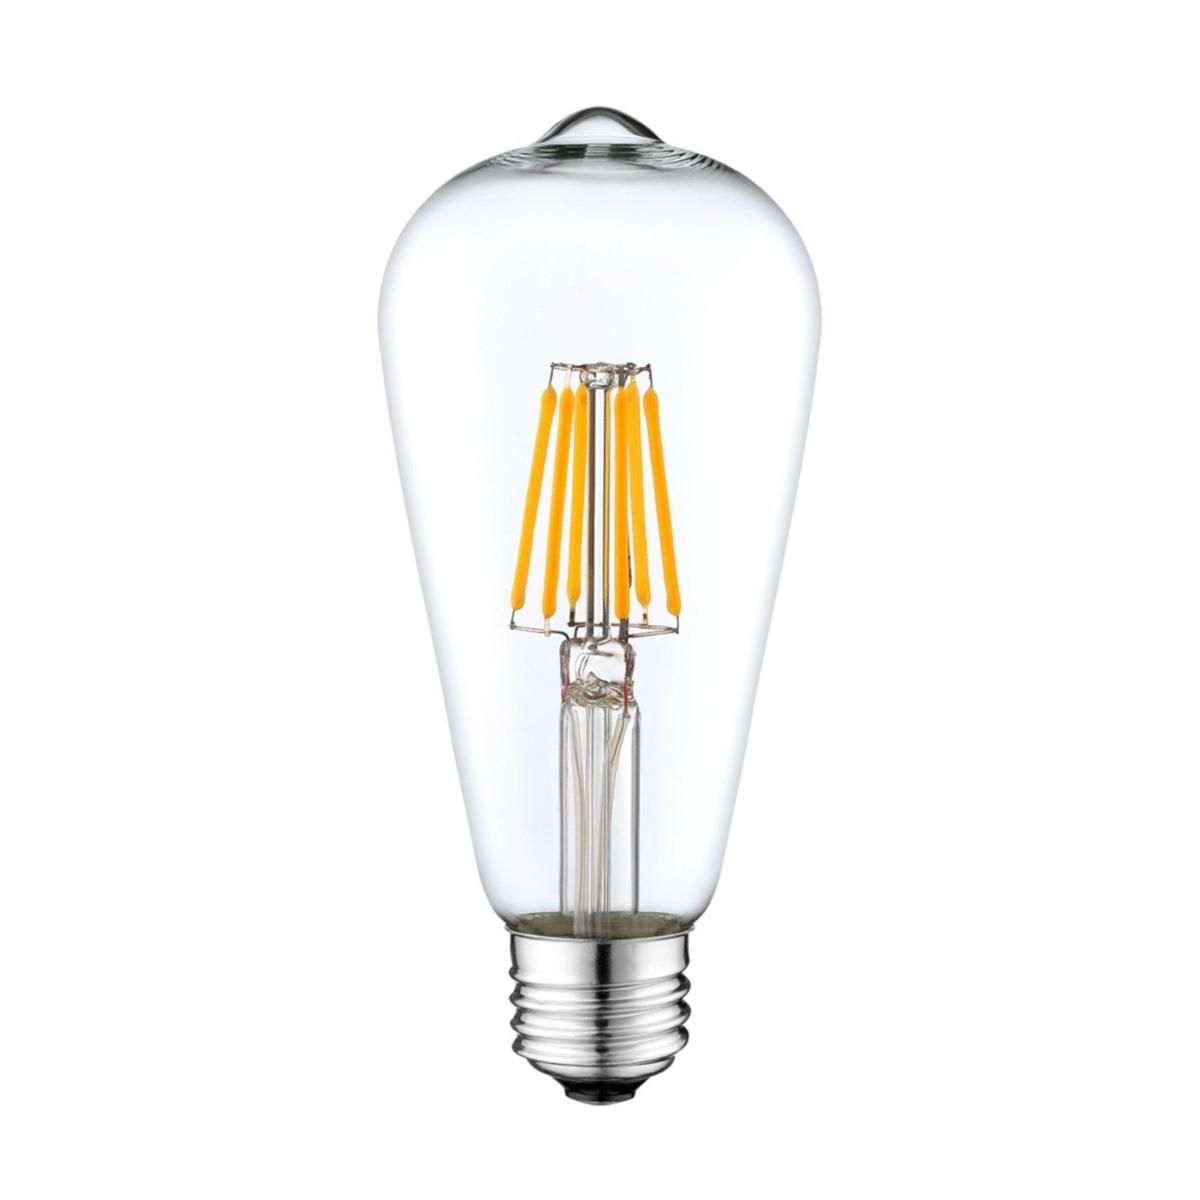 Dimmable 10 Watt Filament Led Energy Efficient Bulbs Glass Light Fixture Led Bulb